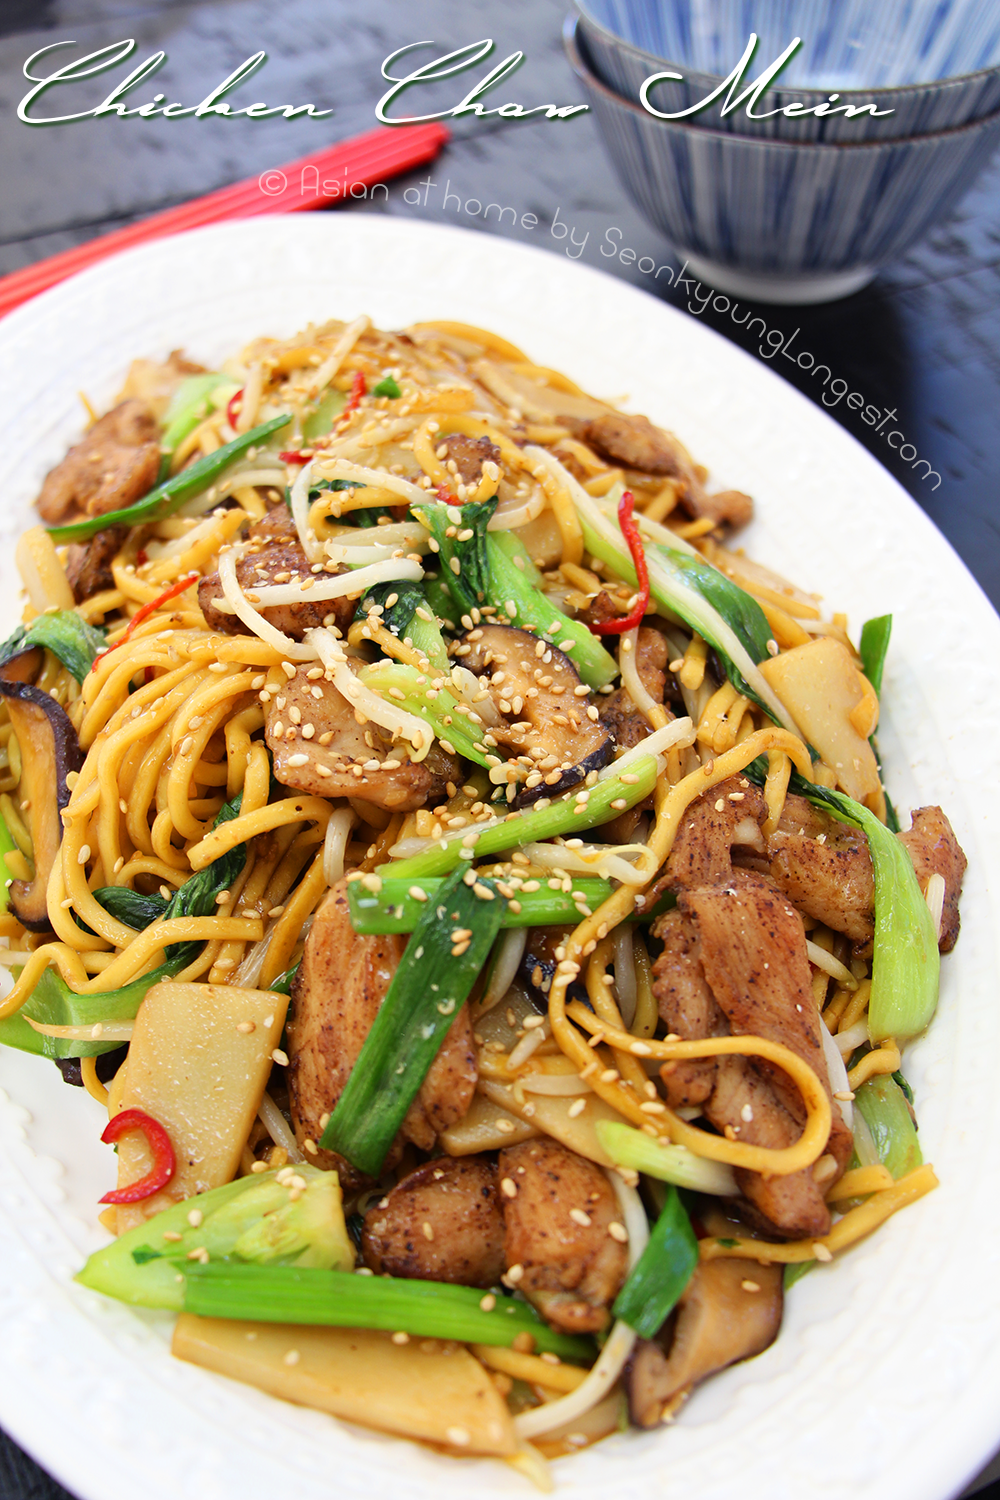 Easy chicken chow mein recipe video seonkyoung longest forumfinder Image collections